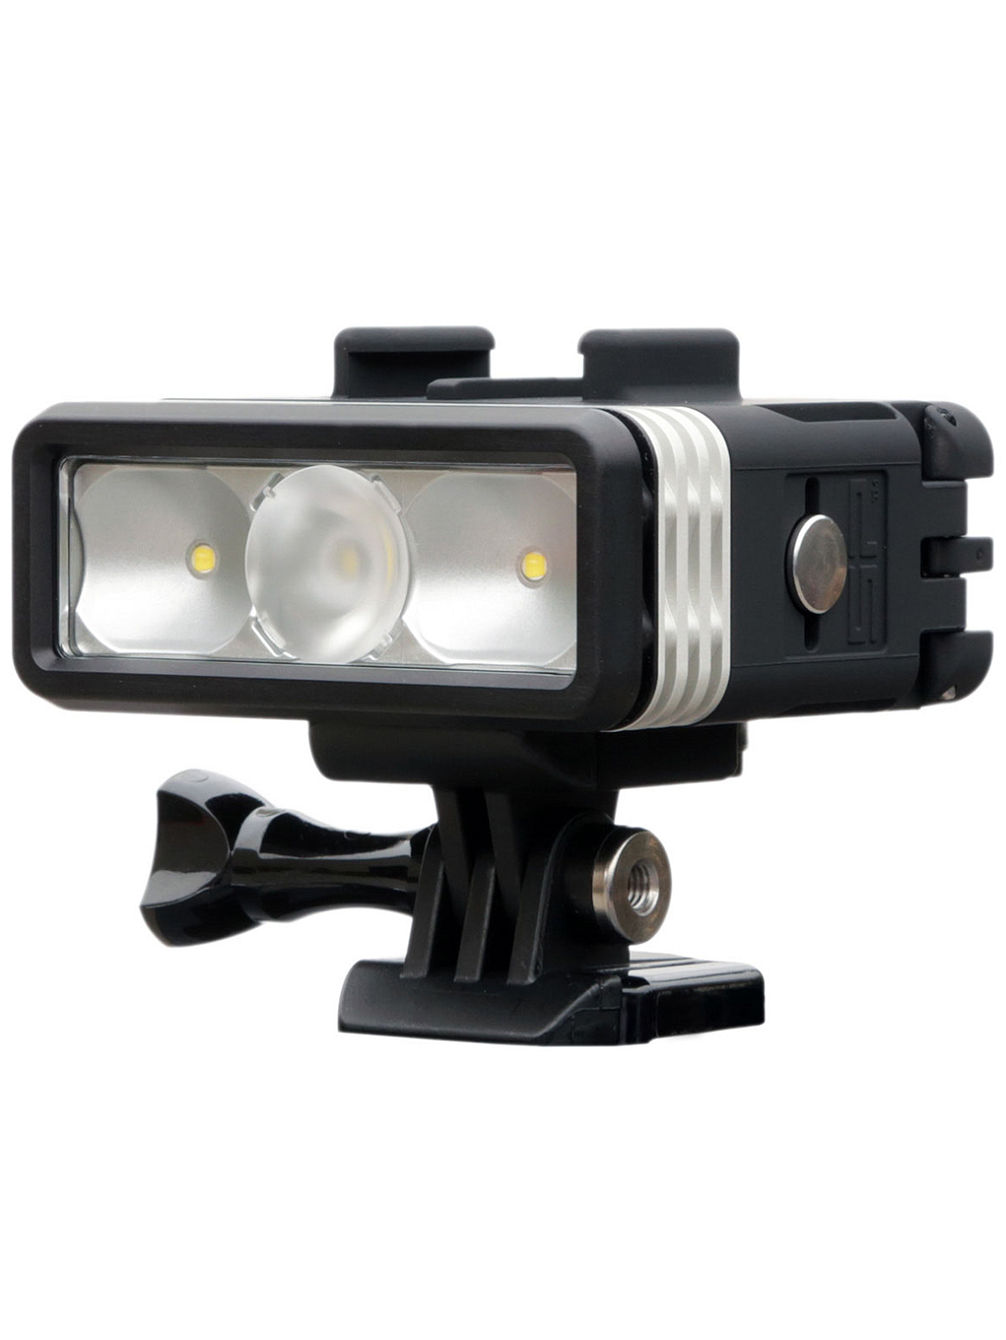 sp-gadgets-pov-light-20